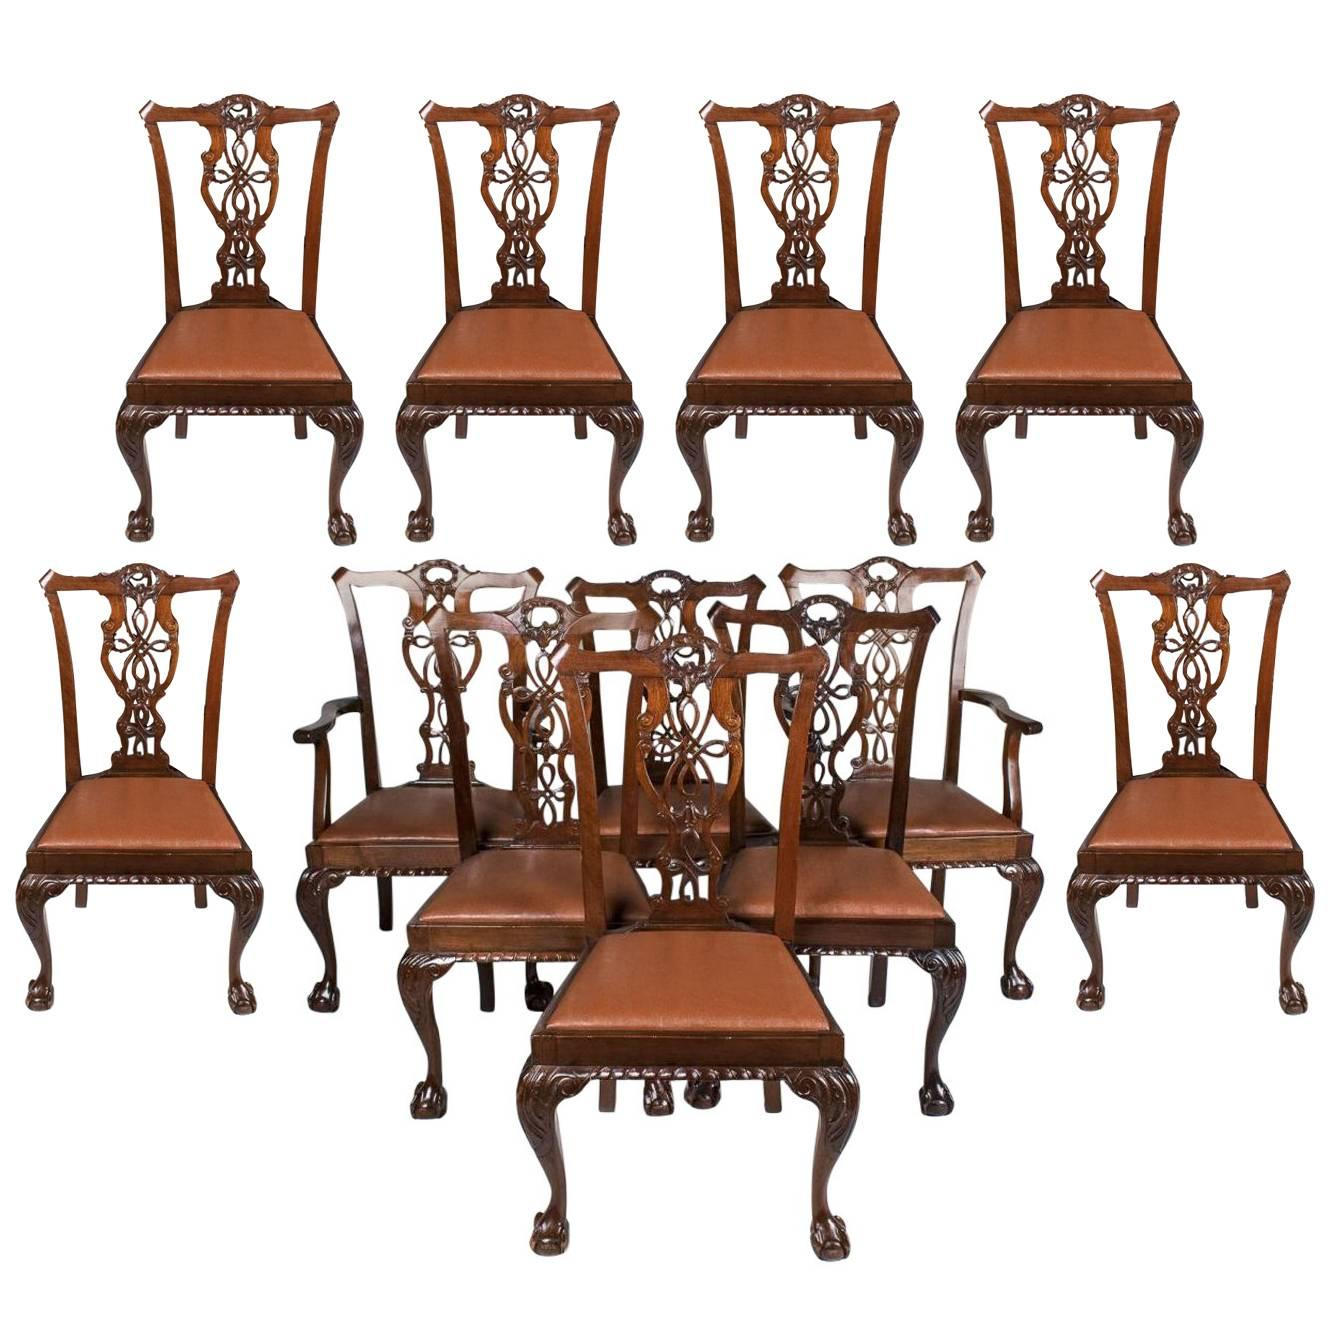 Set Of Twelve 19th Century Walnut Chippendale Chairs, Circa 1860